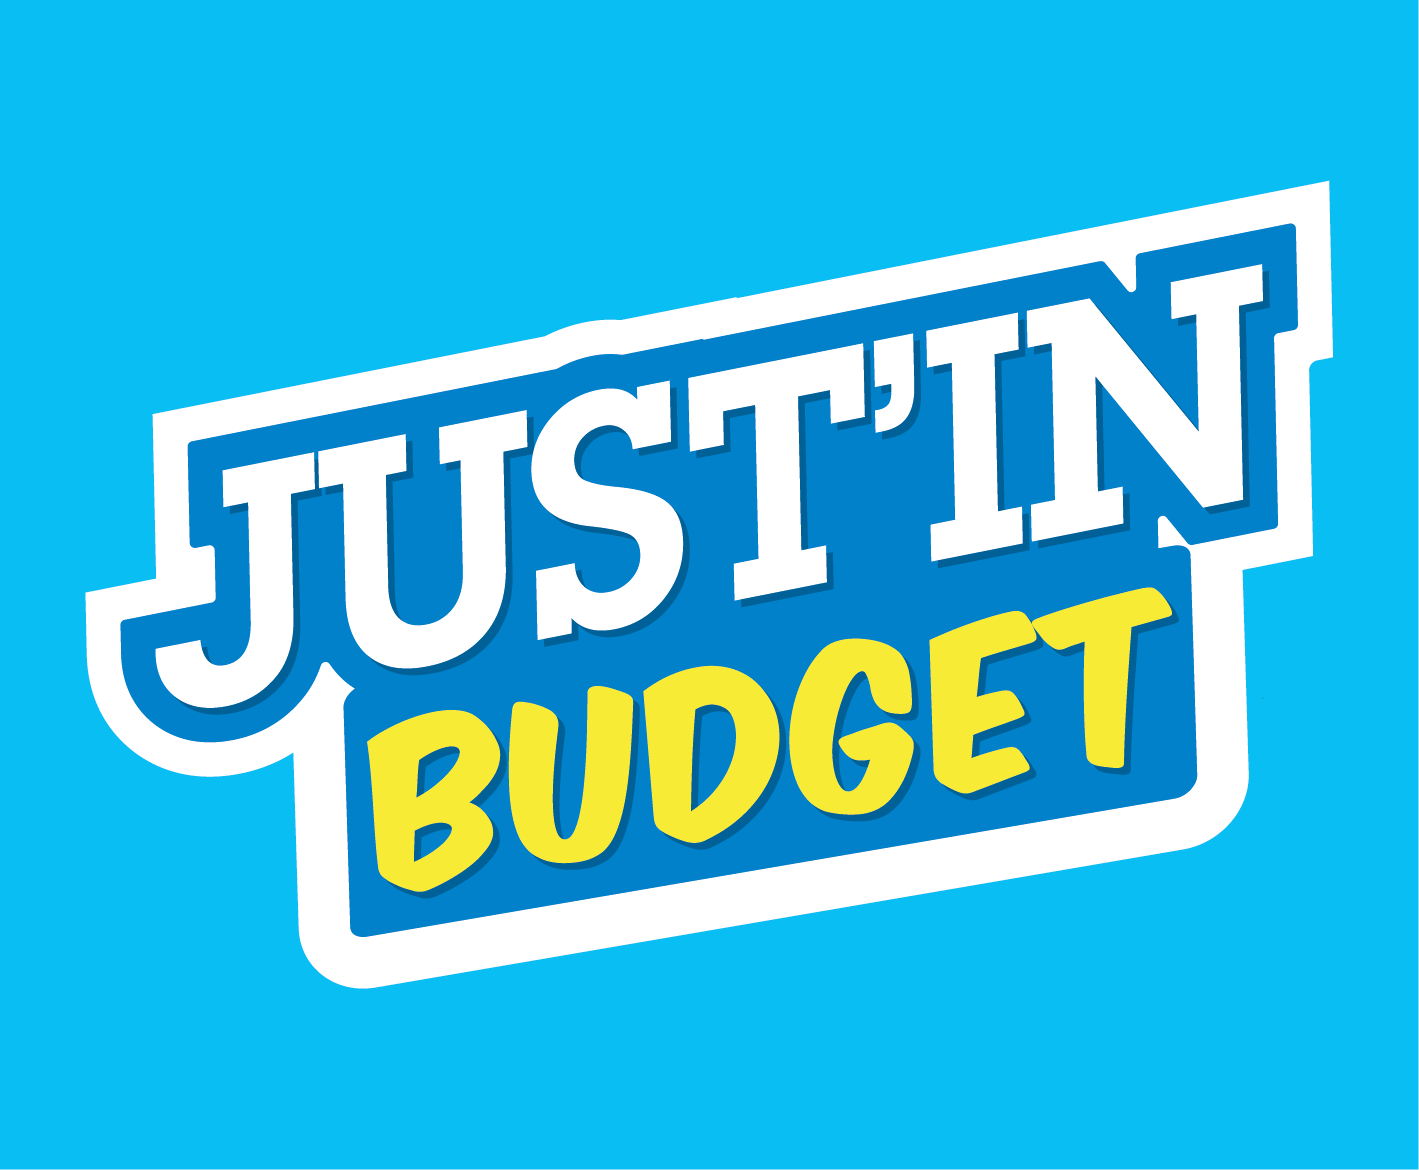 Just'in Budget